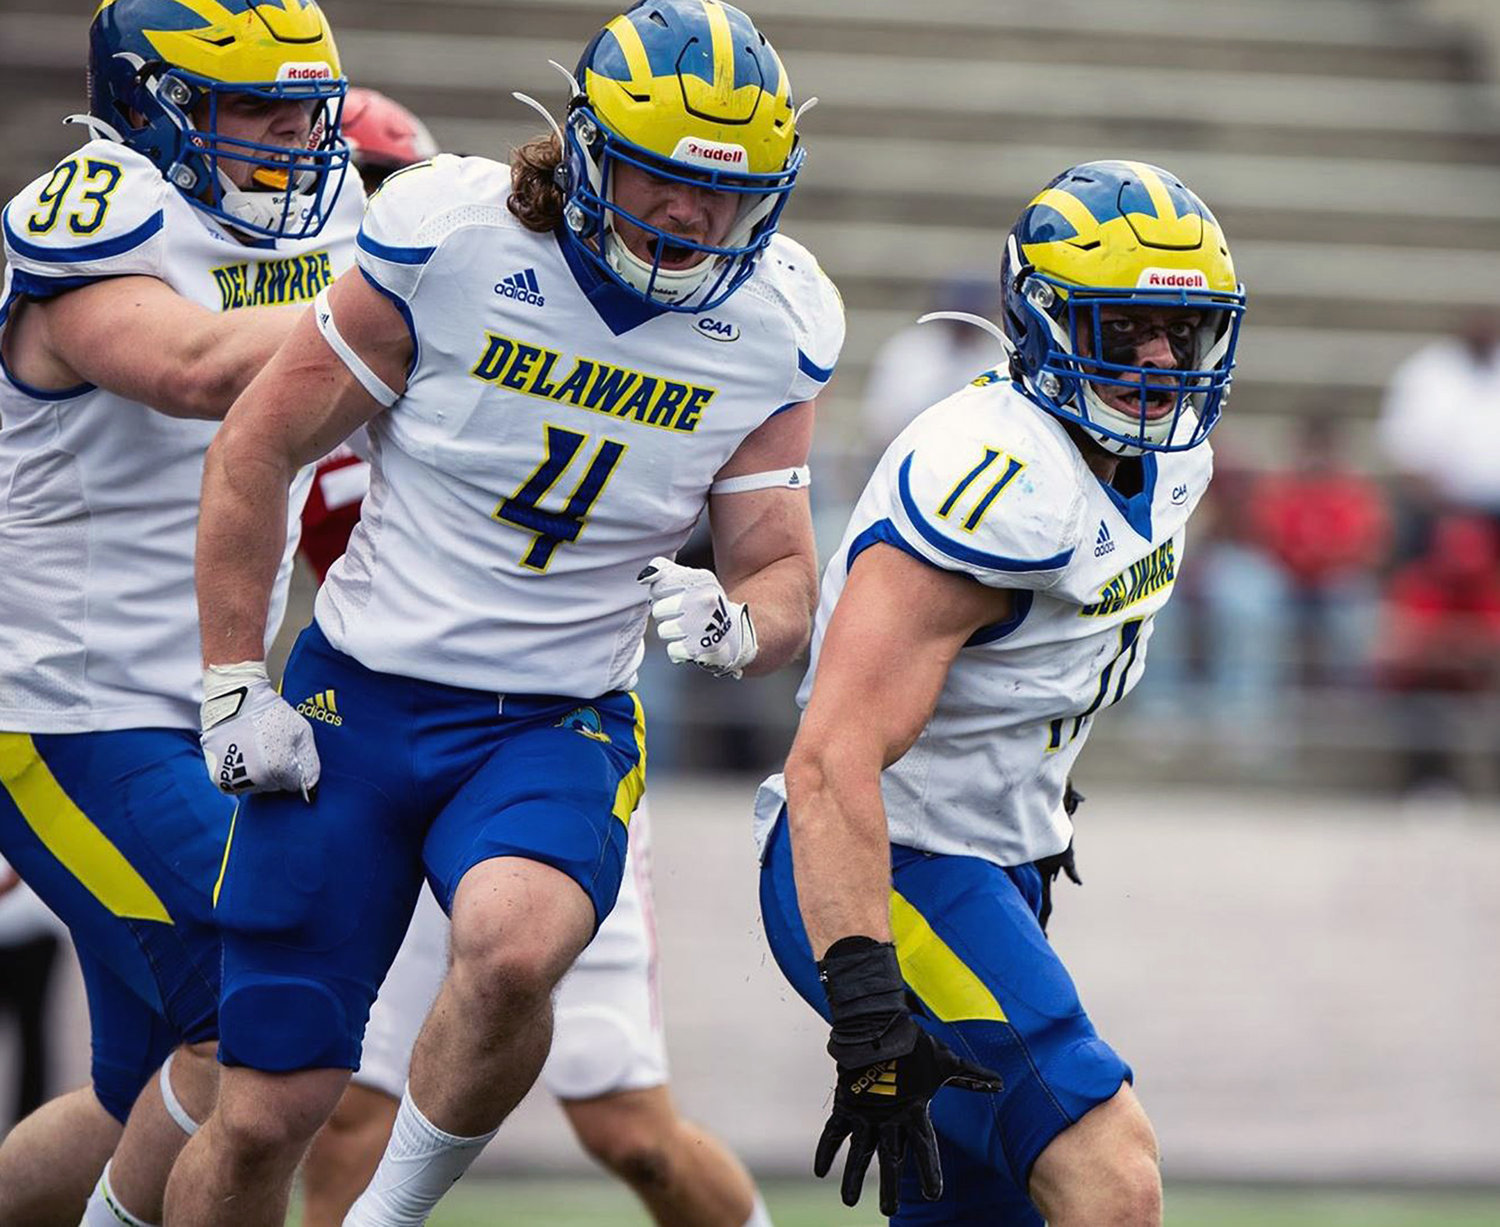 Delaware linebackers Liam Trainer (11) and Colby Reeder (4) celebrate a defensive stop in Sunday's 20-14 win at Jacksonville State.